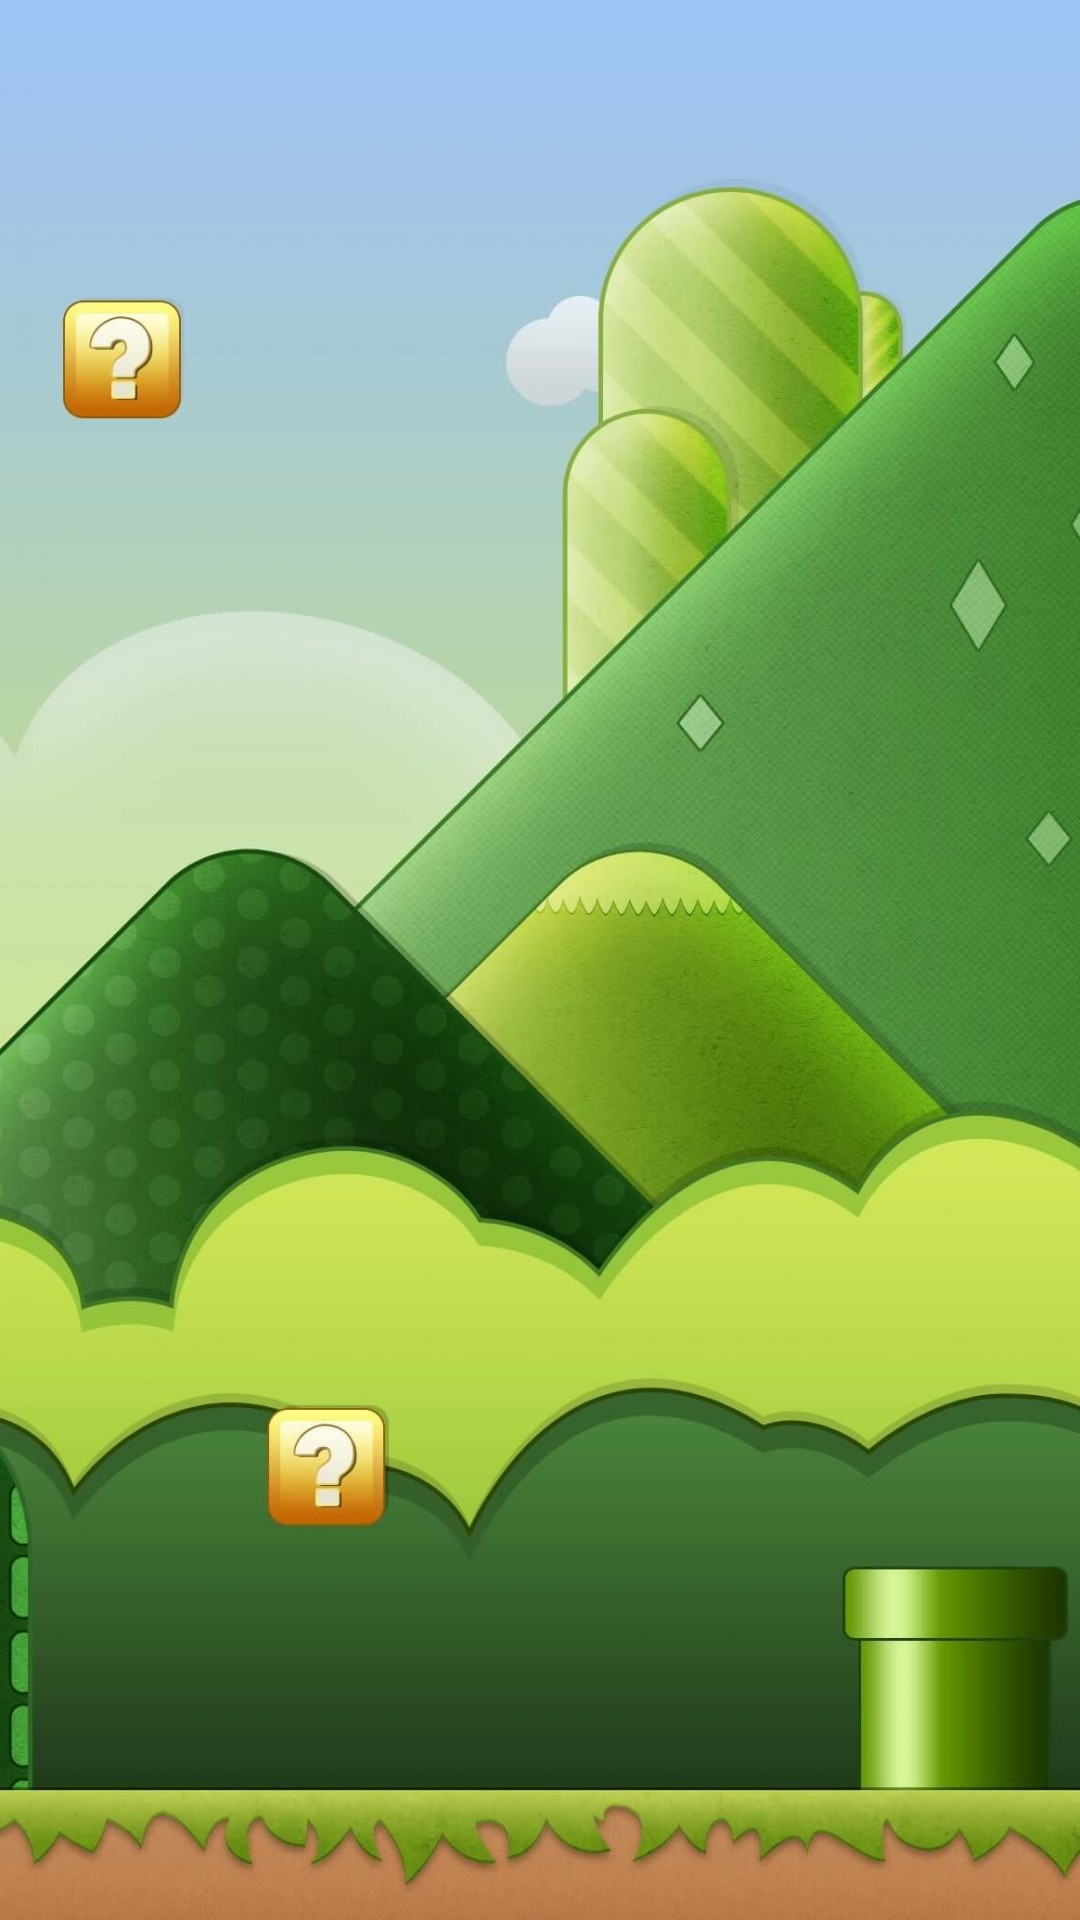 Super Mario Bros World Wallpaper for LG G2